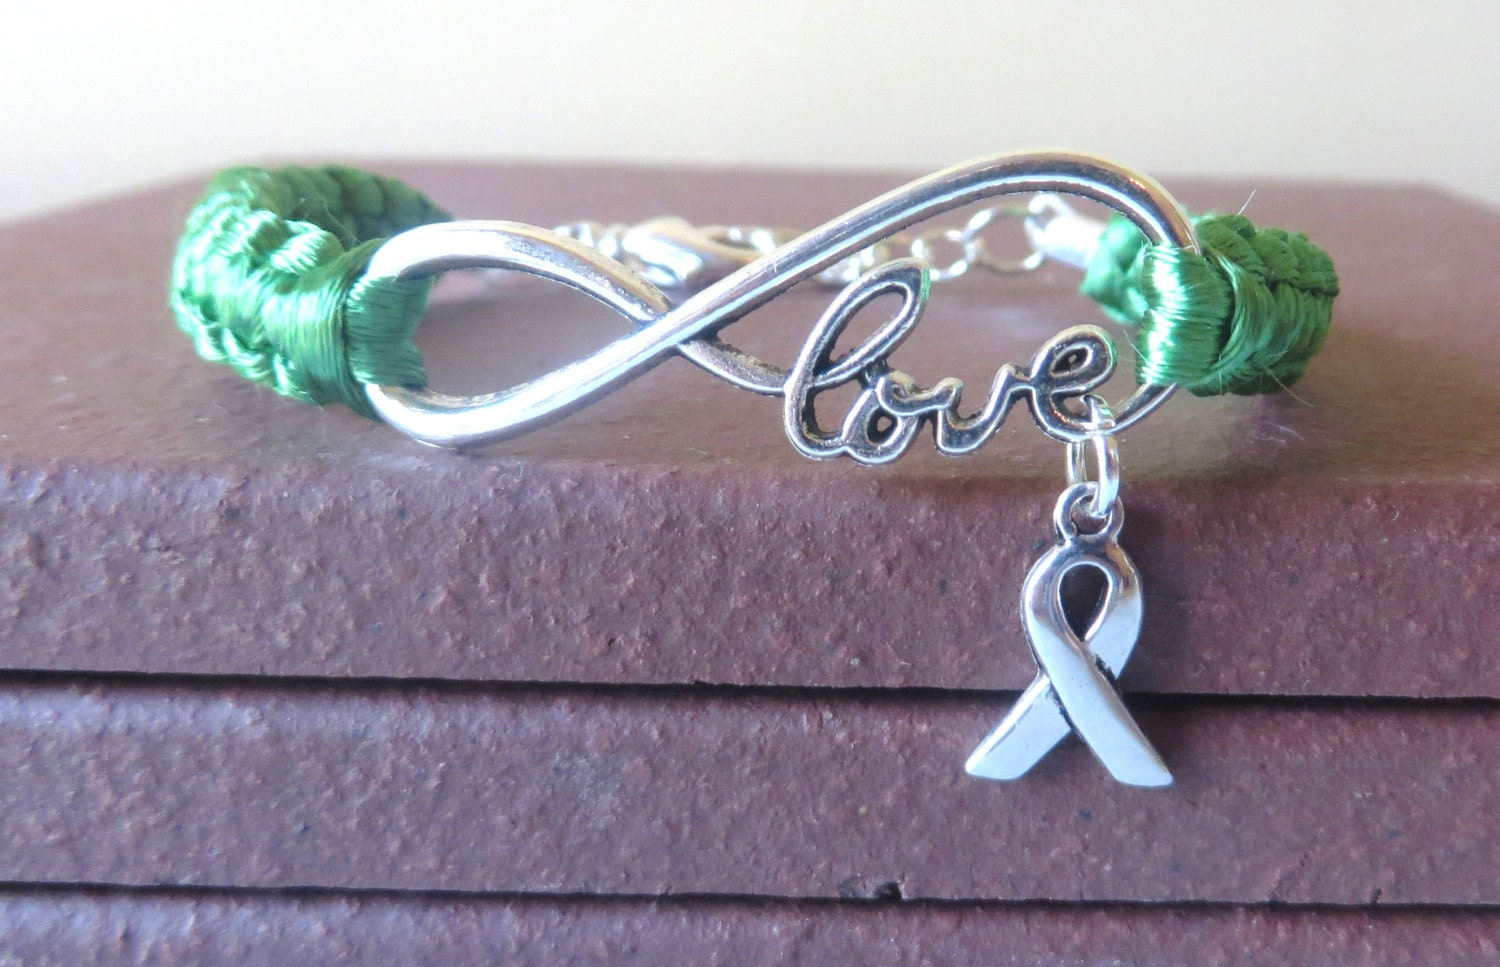 etsy bracelet on favorite a theory best liver blissful personal and images cancer pinterest com blissfultheory shop s my from